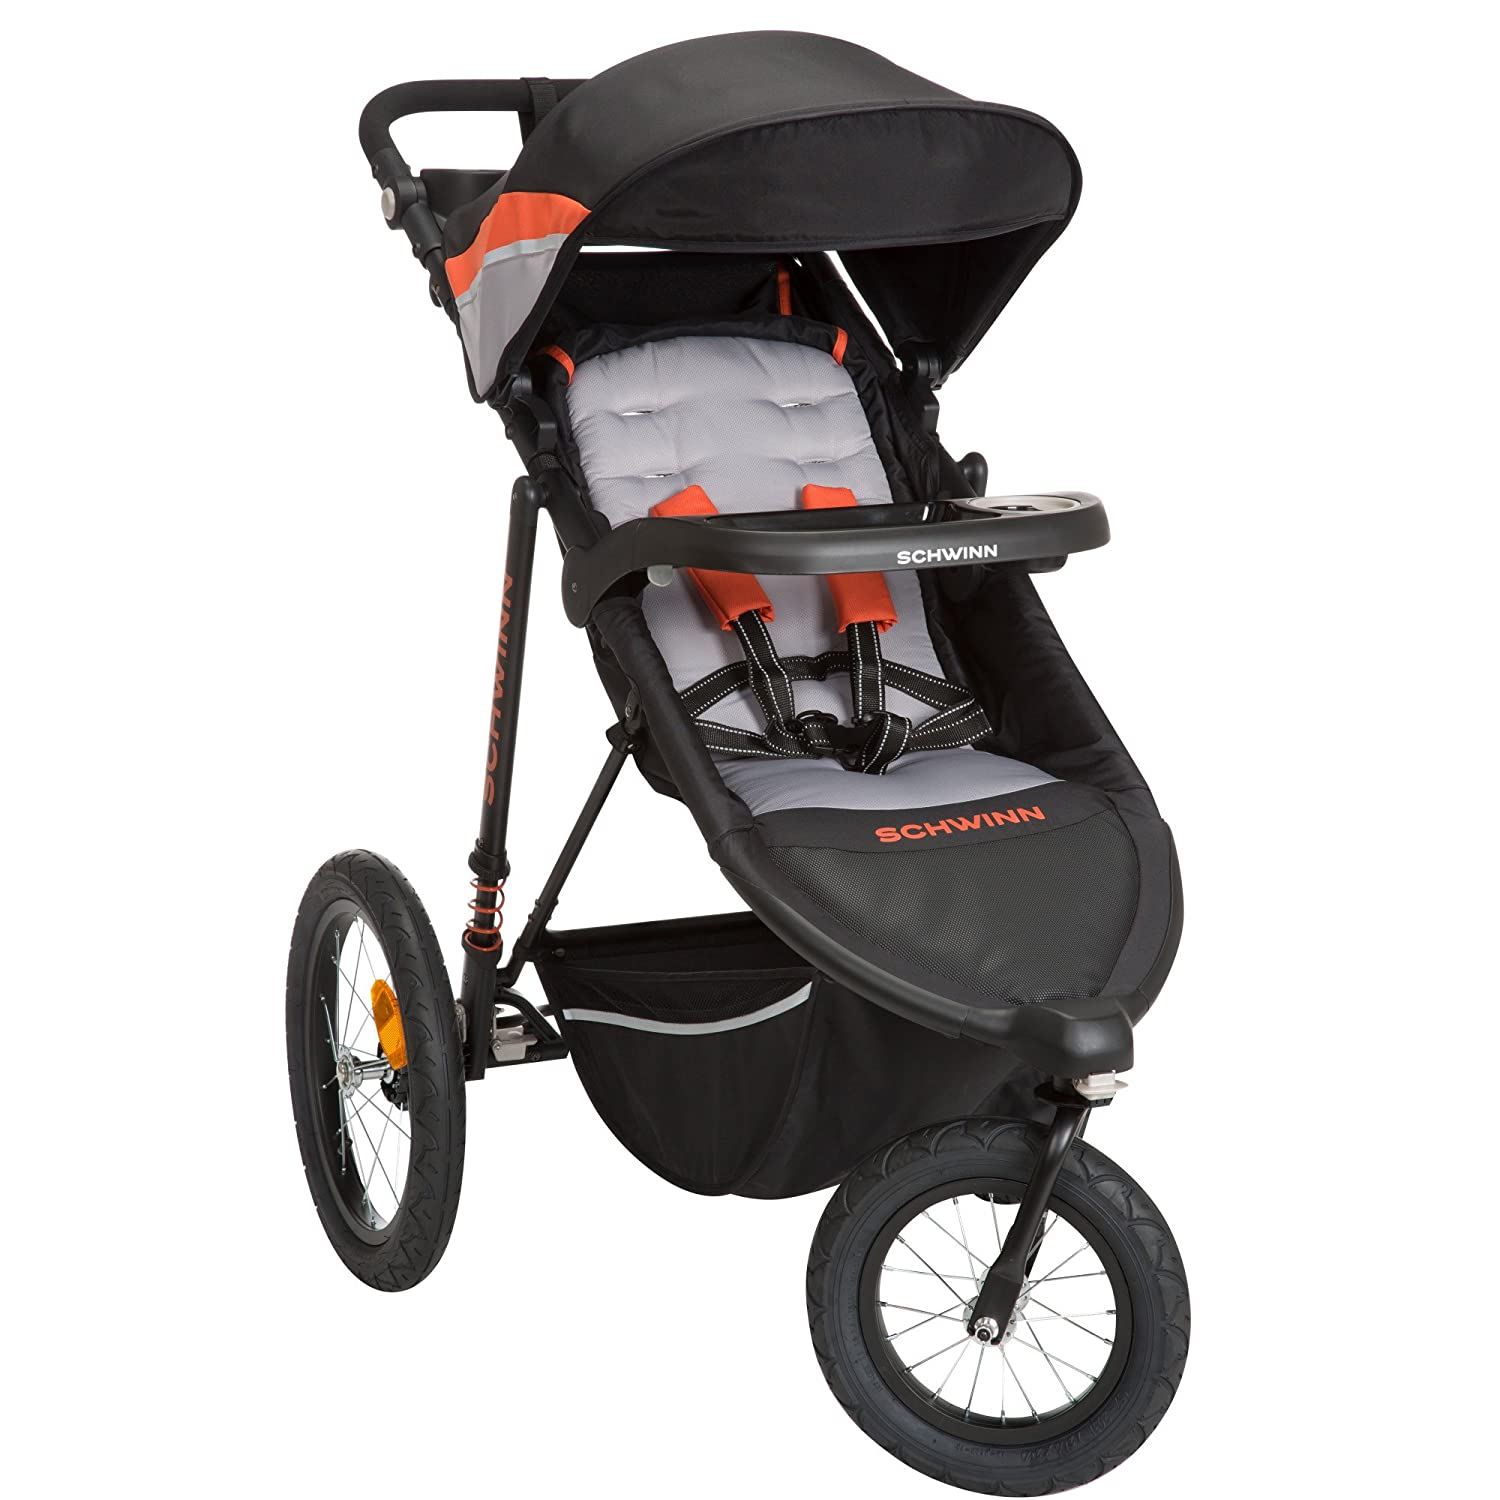 Schwinn Interval 2-in-1 Jogging Stroller with Locking Front Wheel (Oriole) CV309EHC